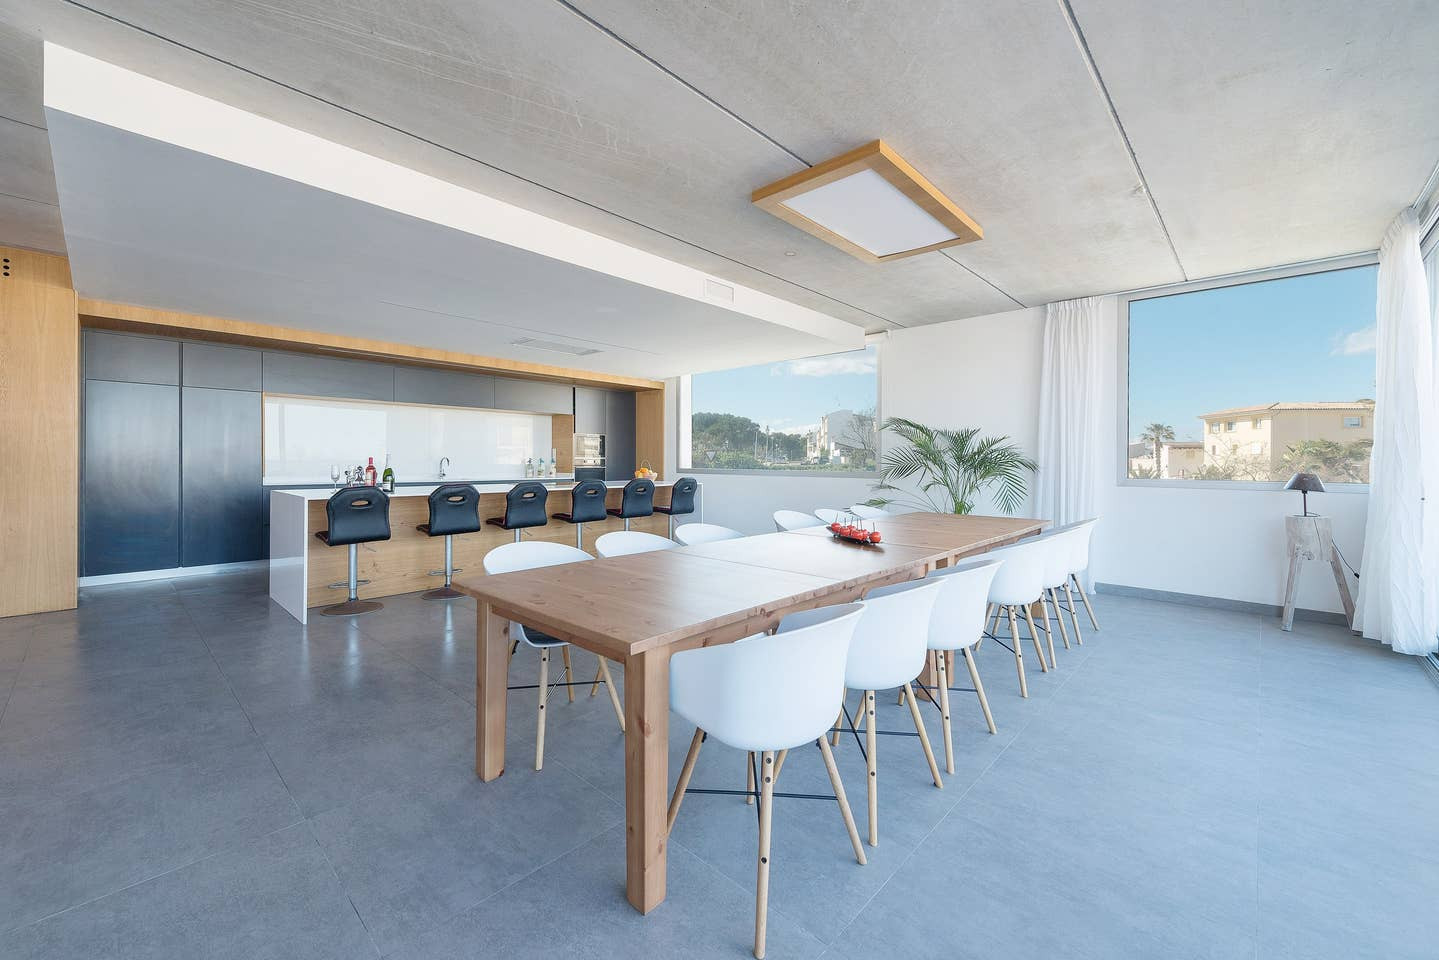 Large dining area to eat together at the end of the day